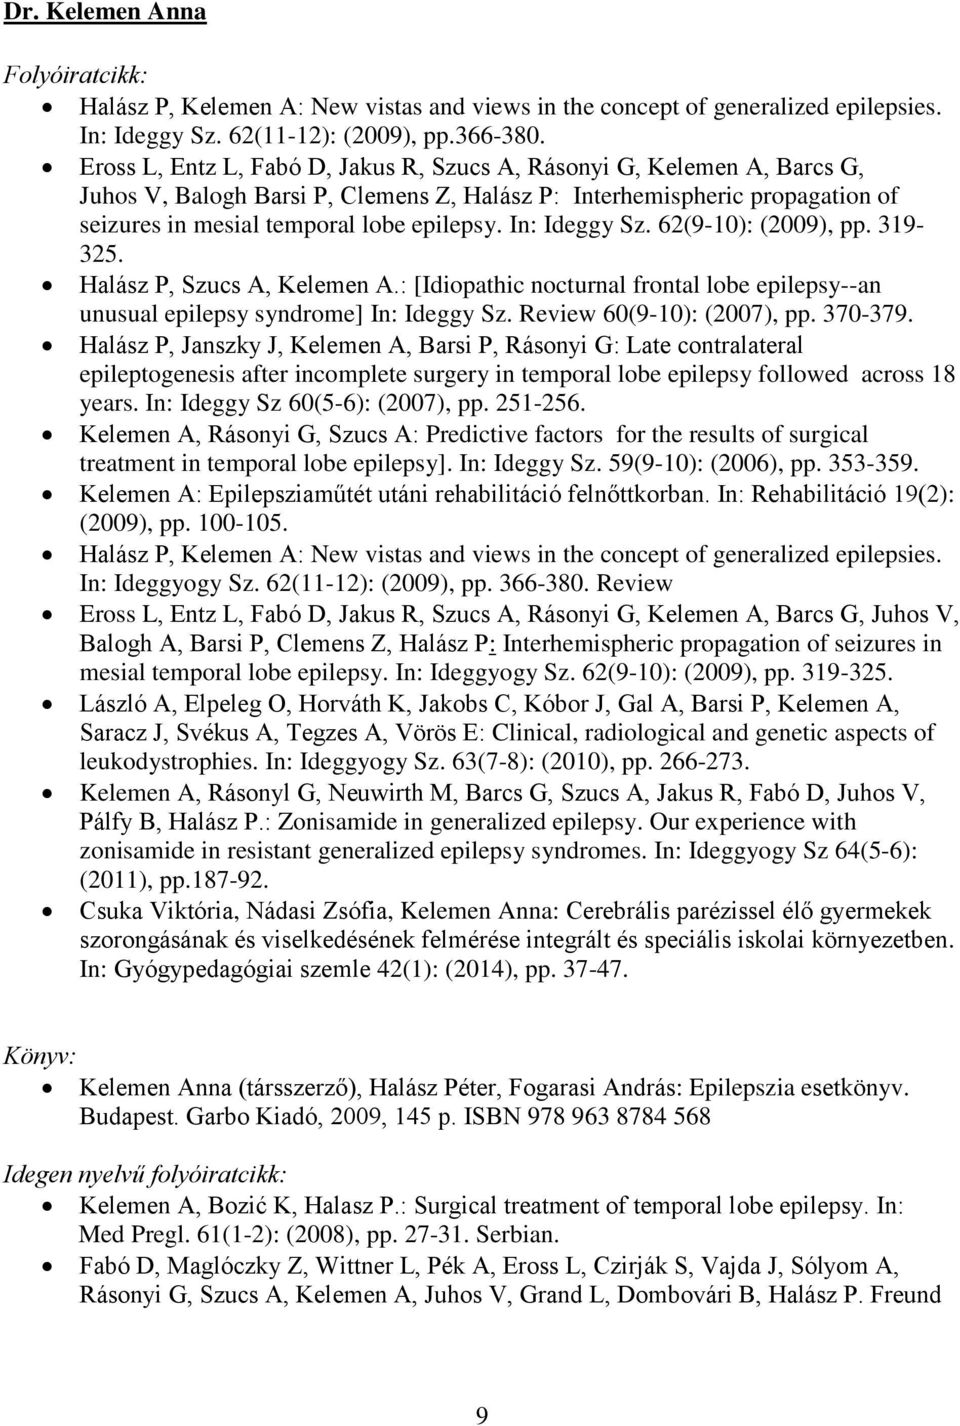 In: Ideggy Sz. 62(9-10): (2009), pp. 319-325. Halász P, Szucs A, Kelemen A.: [Idiopathic nocturnal frontal lobe epilepsy--an unusual epilepsy syndrome] In: Ideggy Sz. Review 60(9-10): (2007), pp.